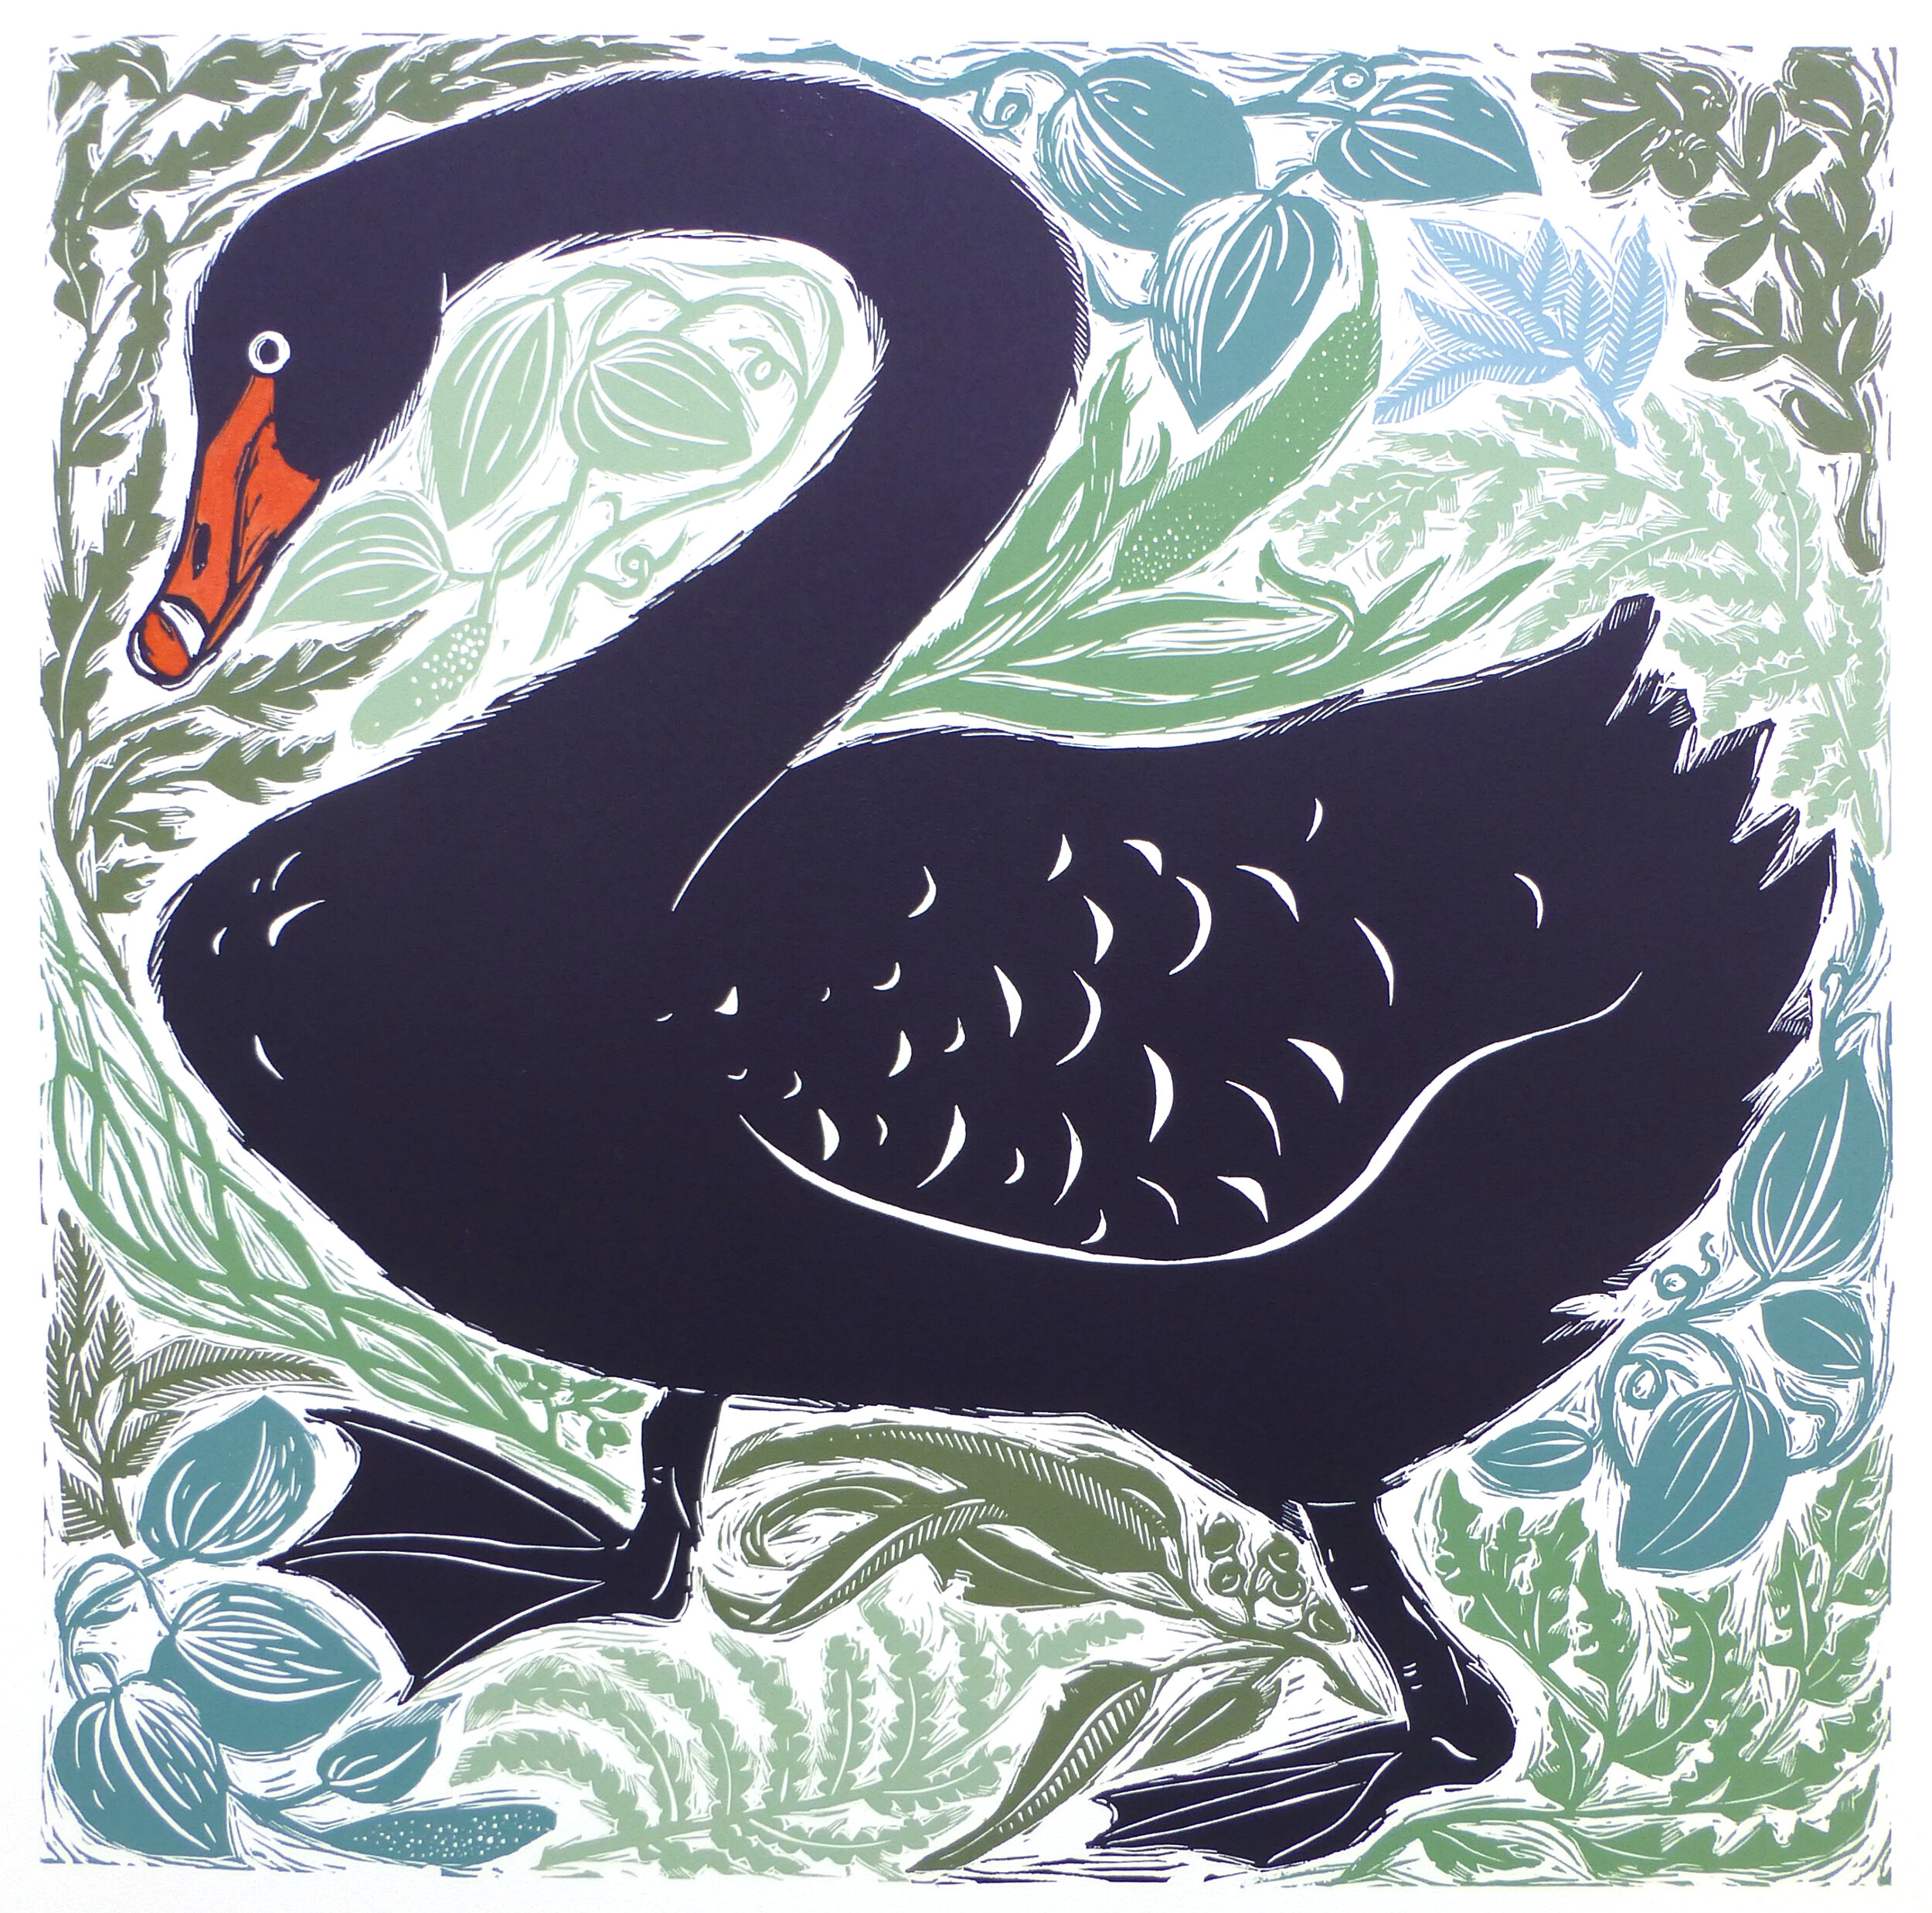 Black Swan Amongst Foliage   Multiblock linocut with hand colouring, 2019  Edition of 10  Image size: 55 cm x 55.5 cm  Paper size: 78 cm x 72 cm  $350 unframed